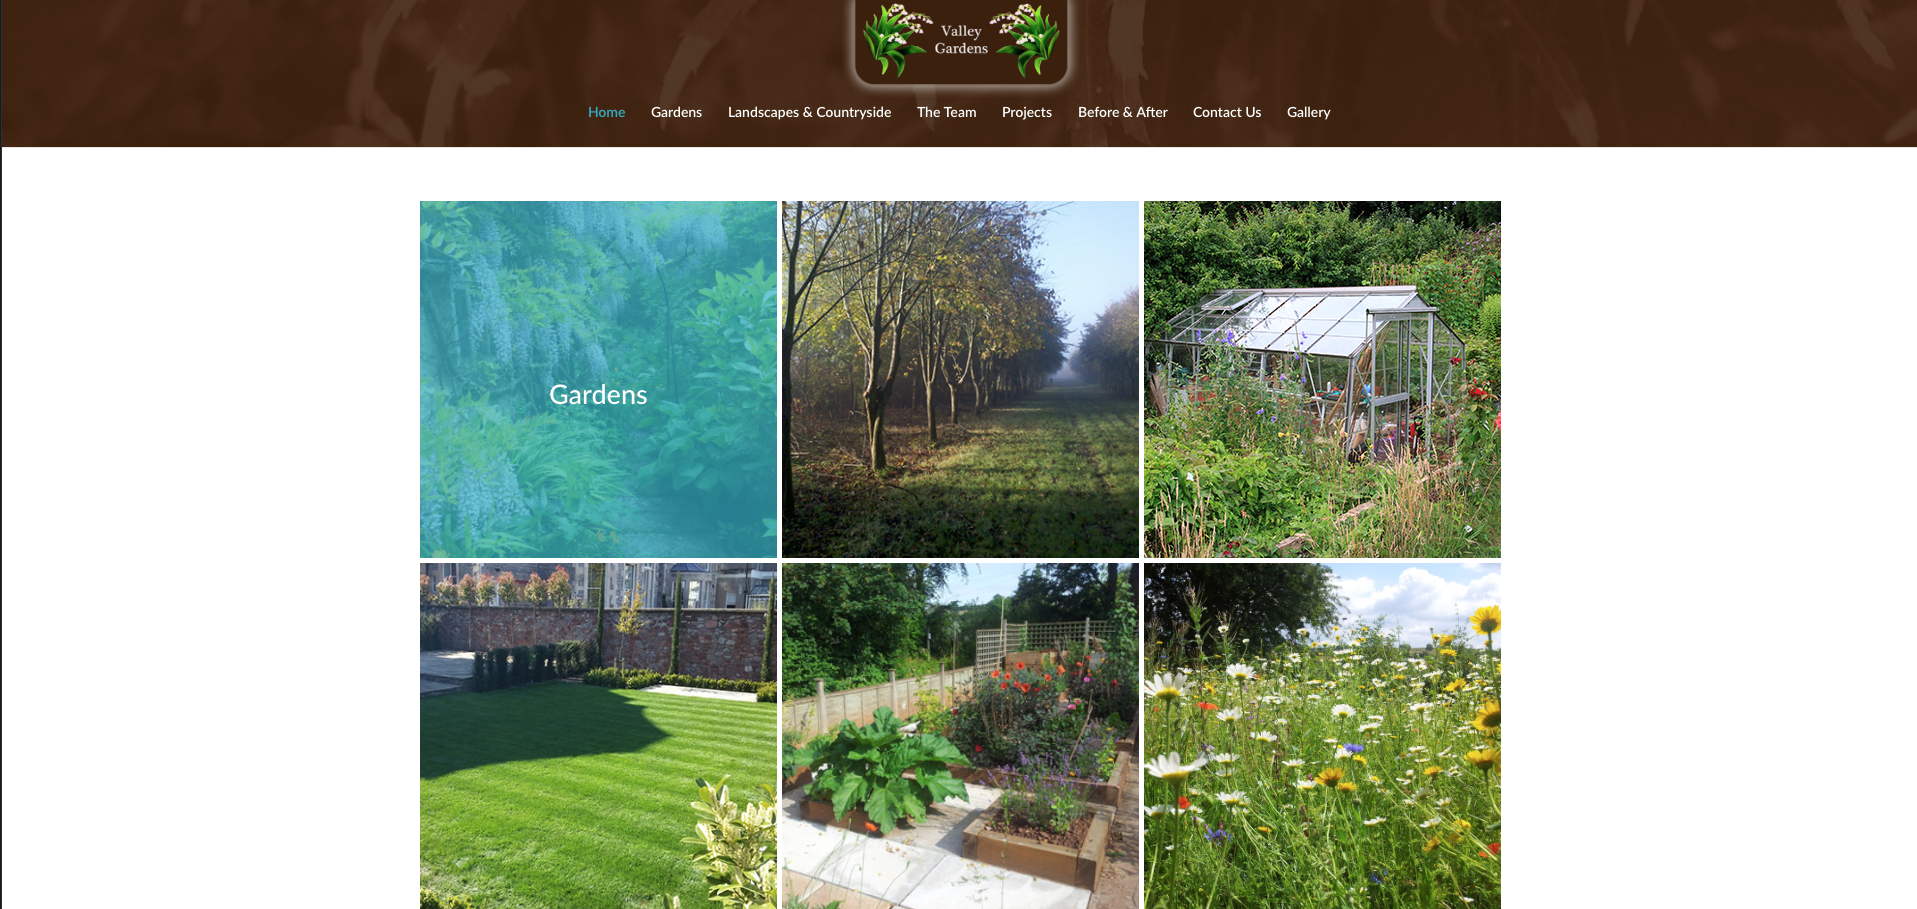 Valley Gardens Home page